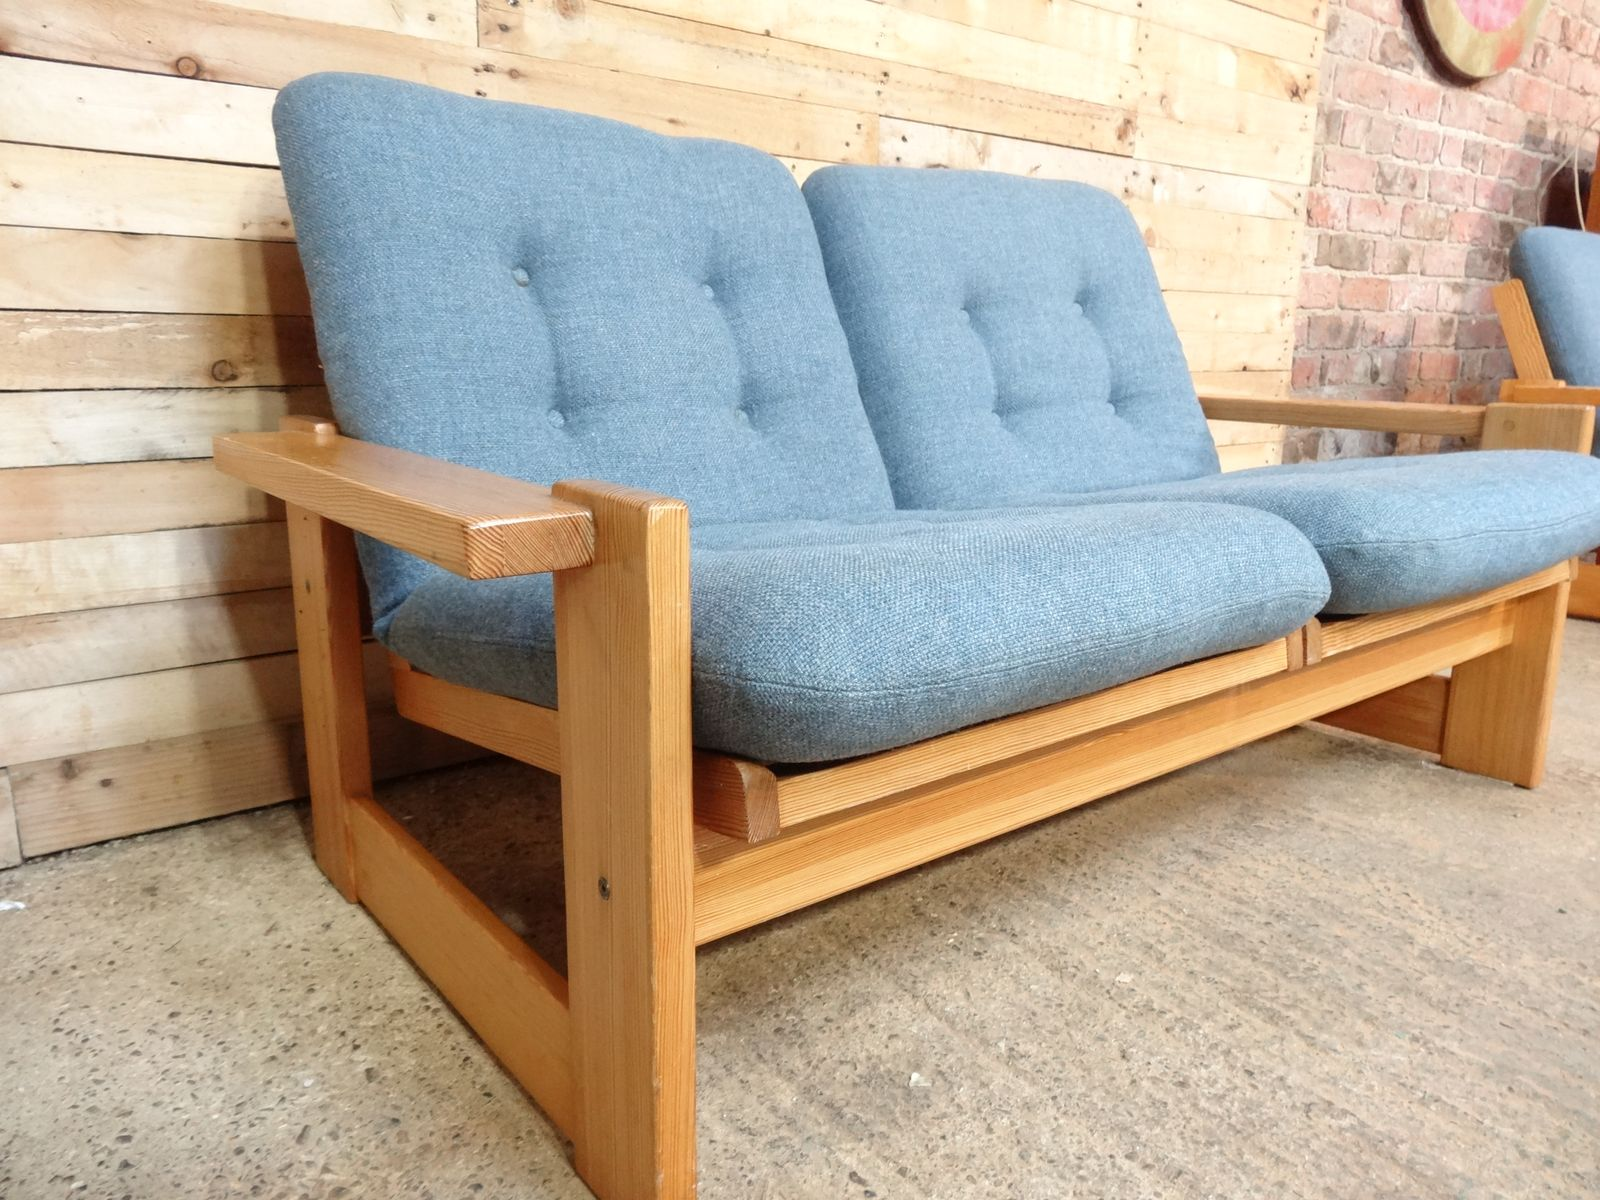 Vintage Dutch Armchairs and Two Seater Sofa Set from Pastoe 1969